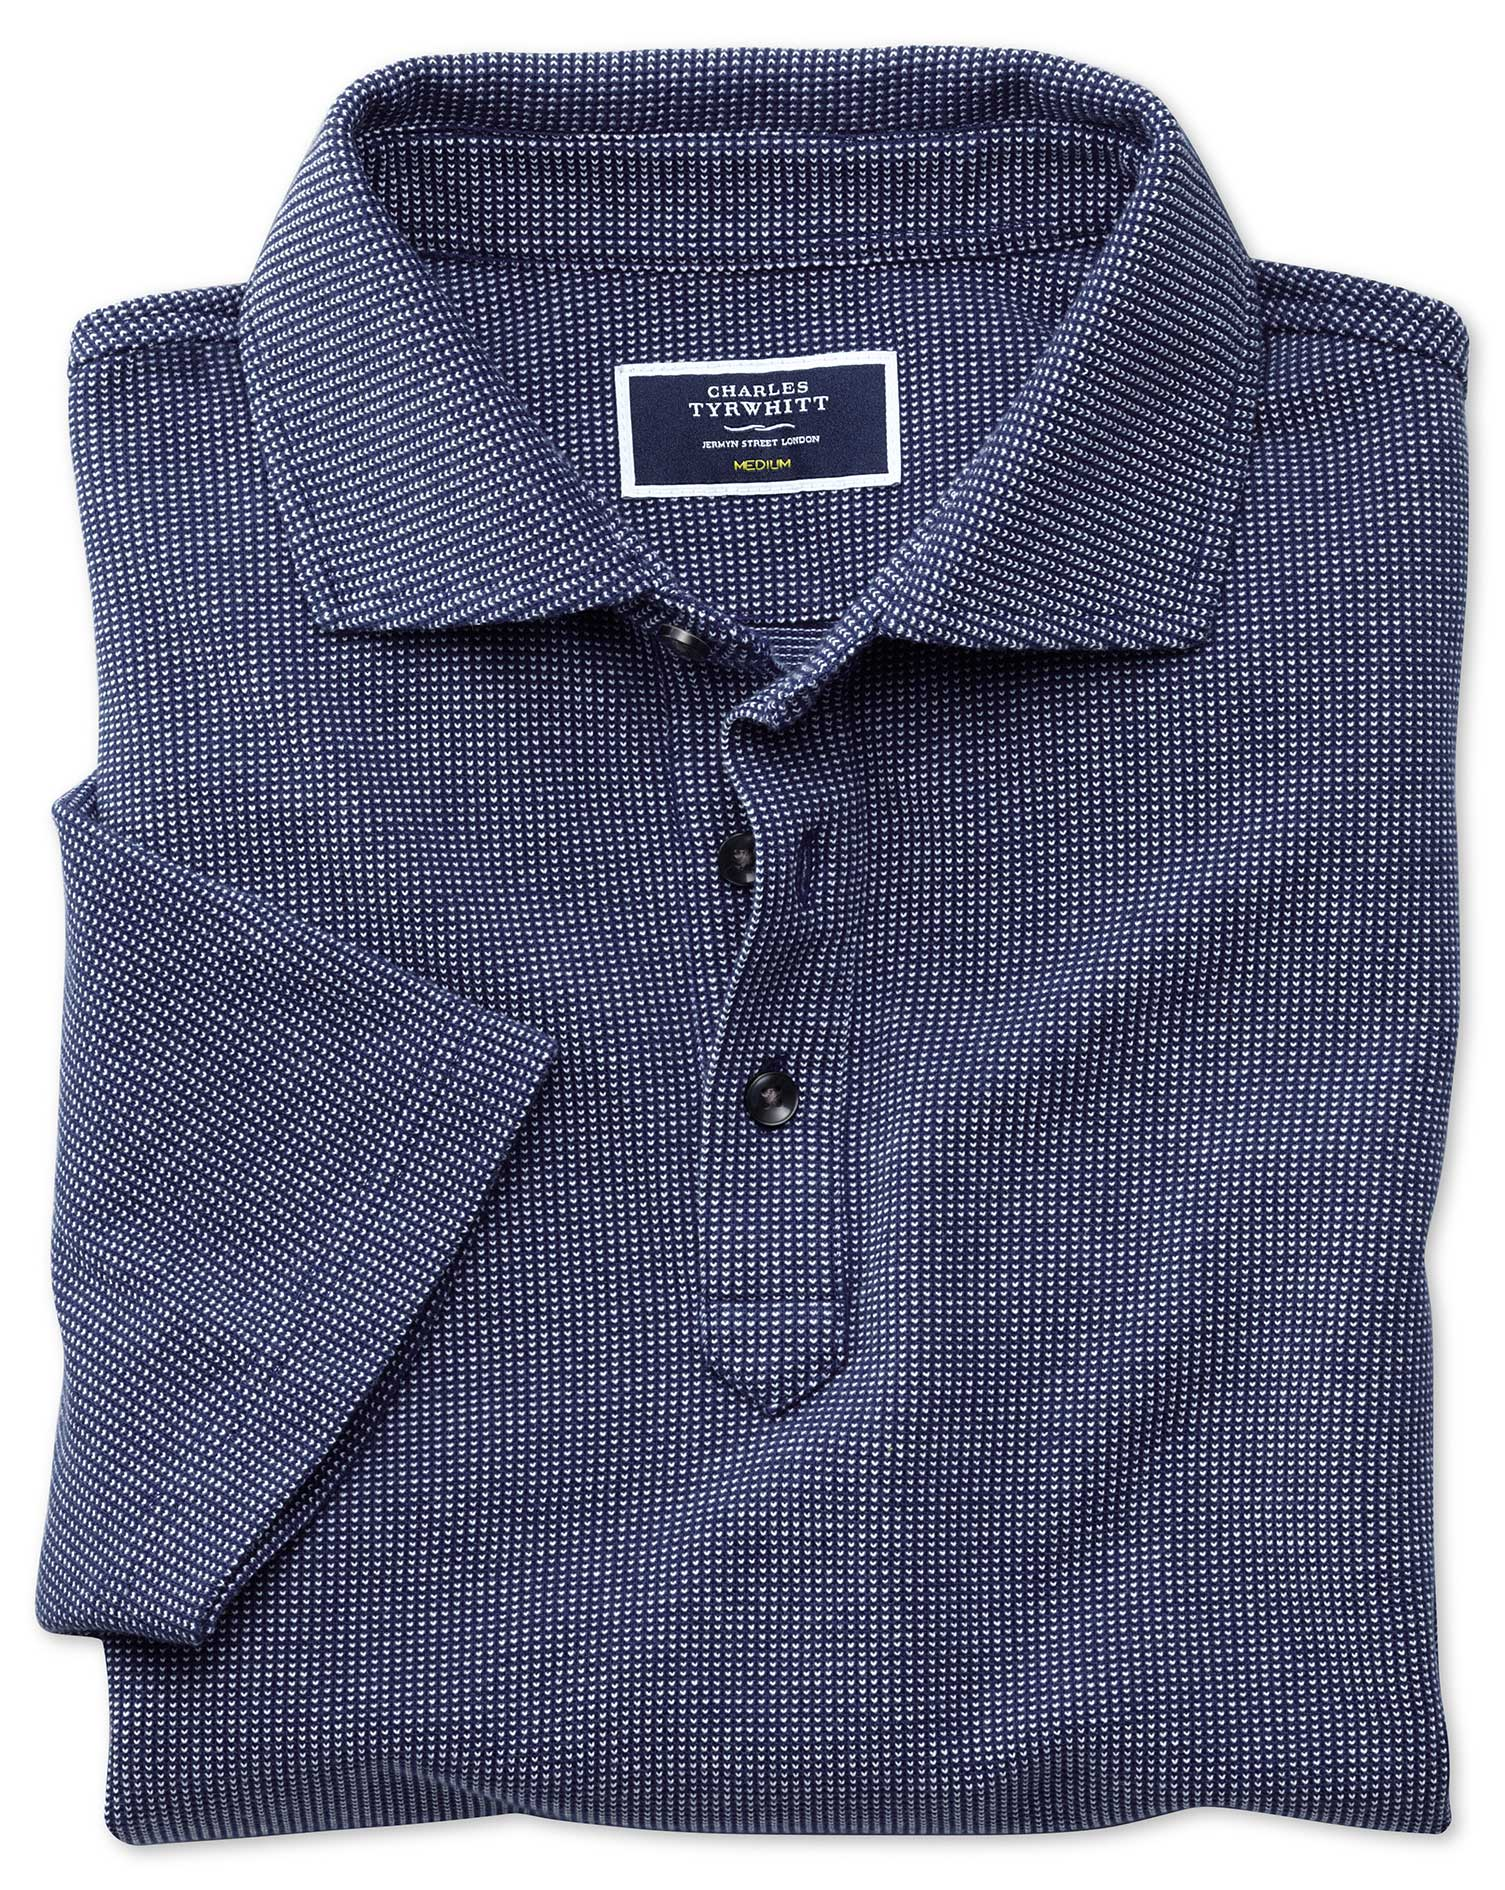 Blue and White Birdseye Cotton Polo Size Small by Charles Tyrwhitt